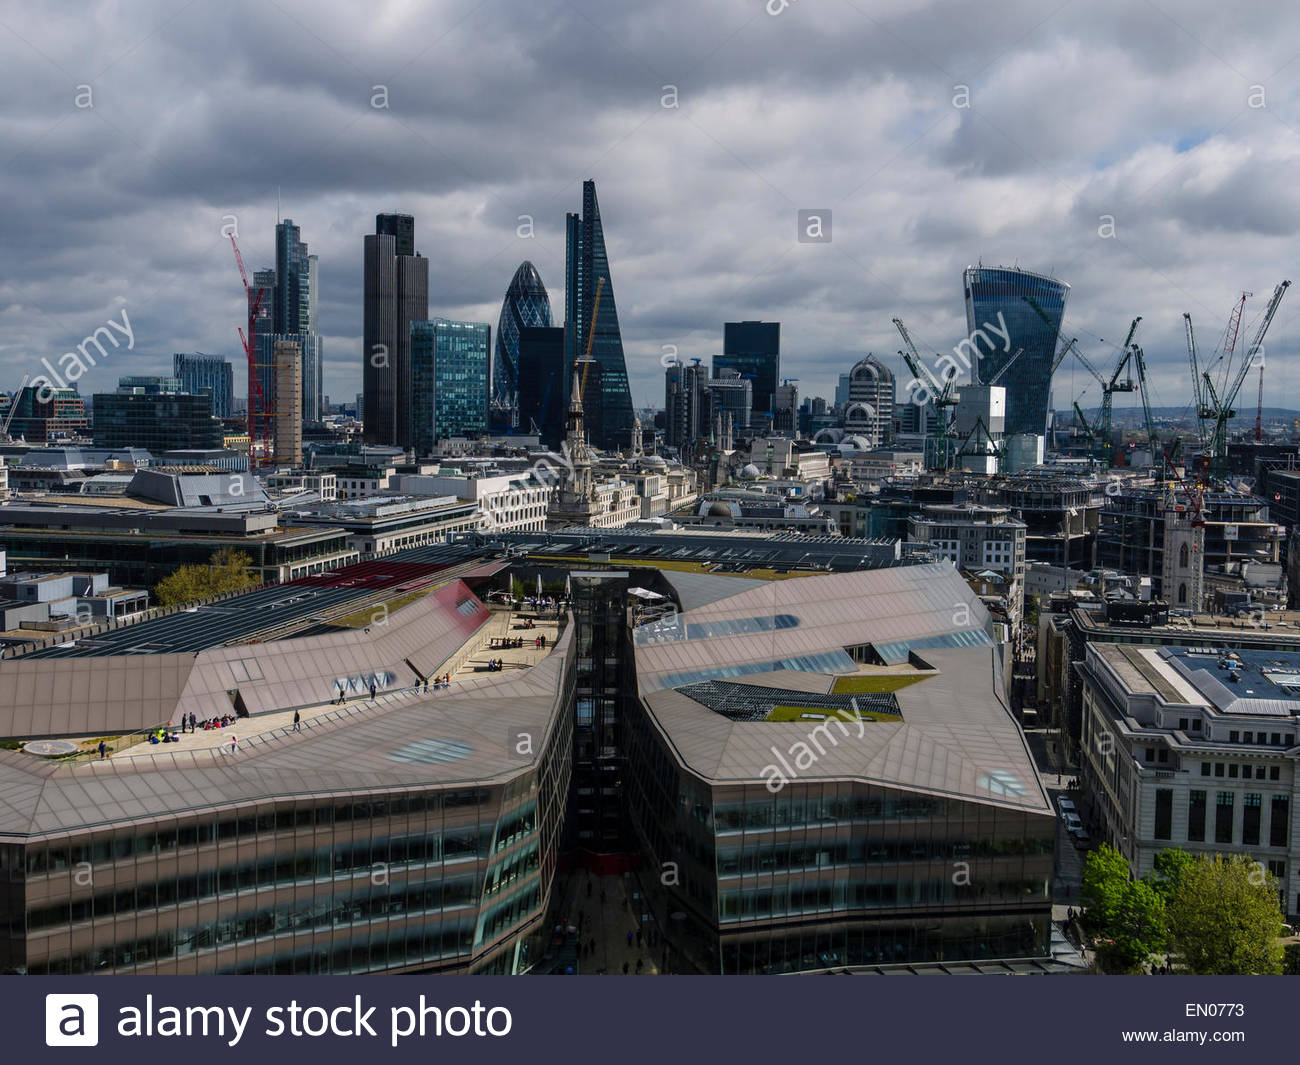 London View from Stone Gallery St Paul's Cathedral Dome England UK - Stock Image